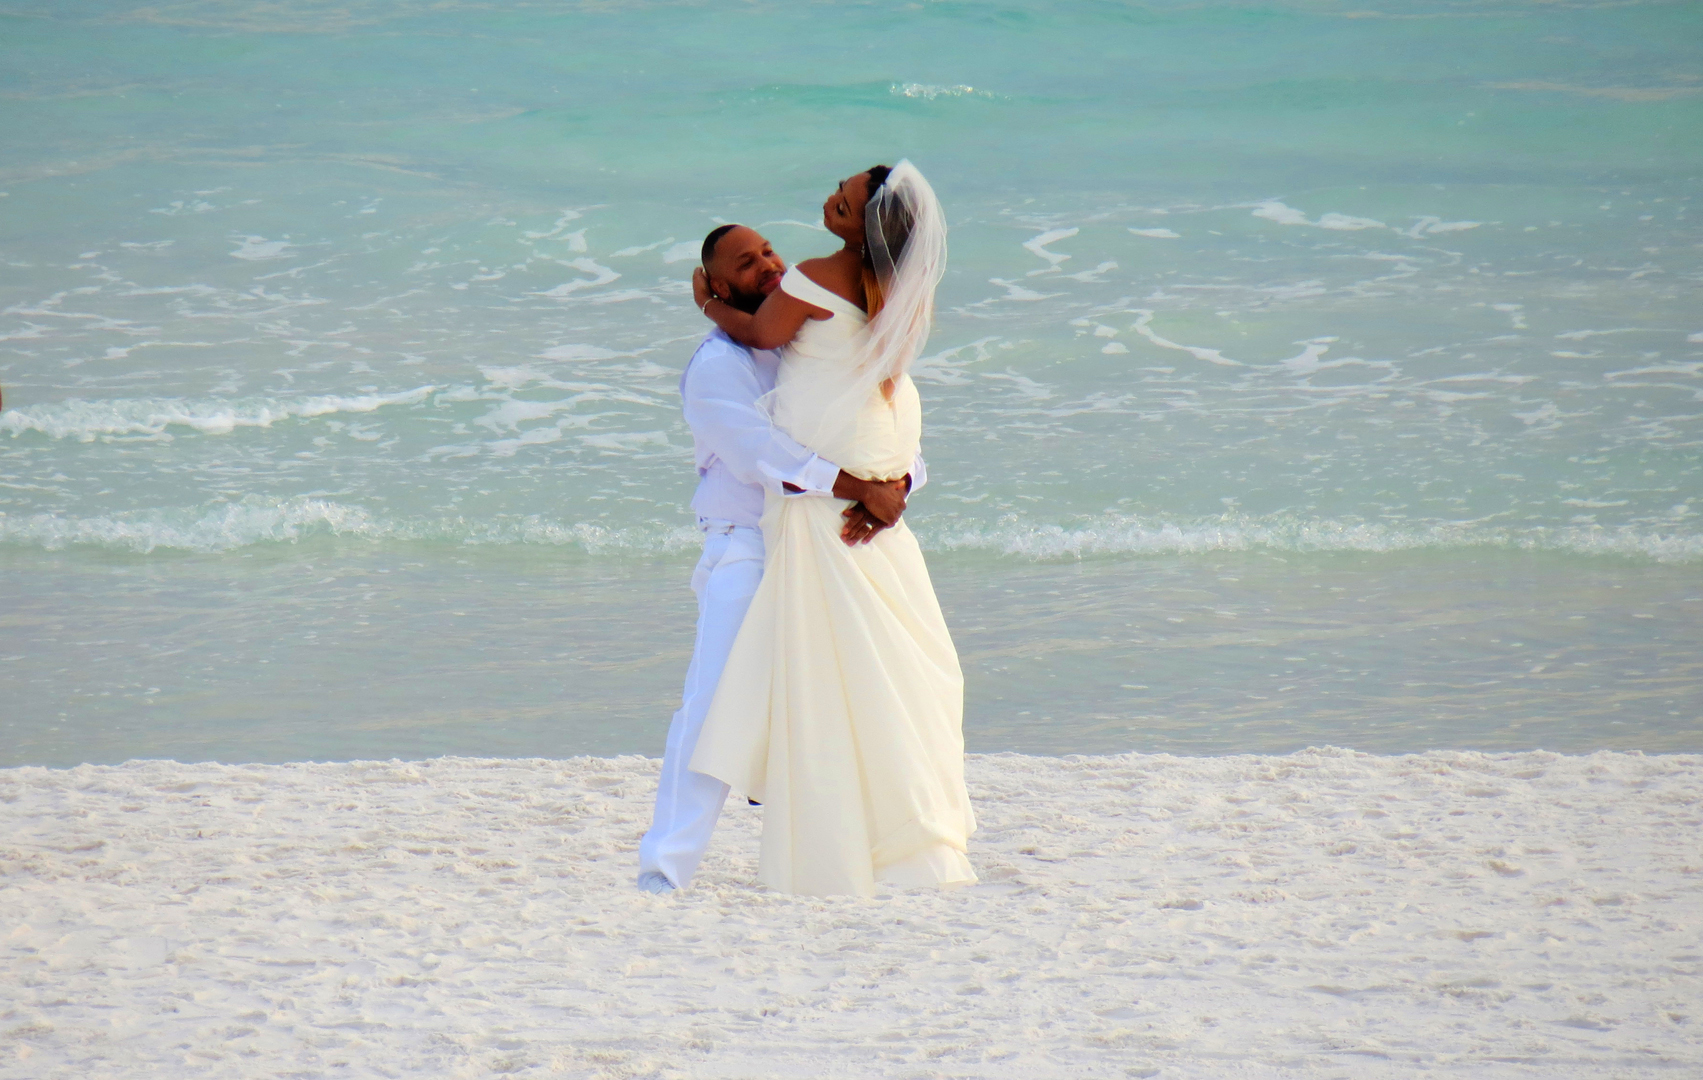 The most beautiful beach weddings are the simplest ones, let the water, sand and sky be your best backdrop